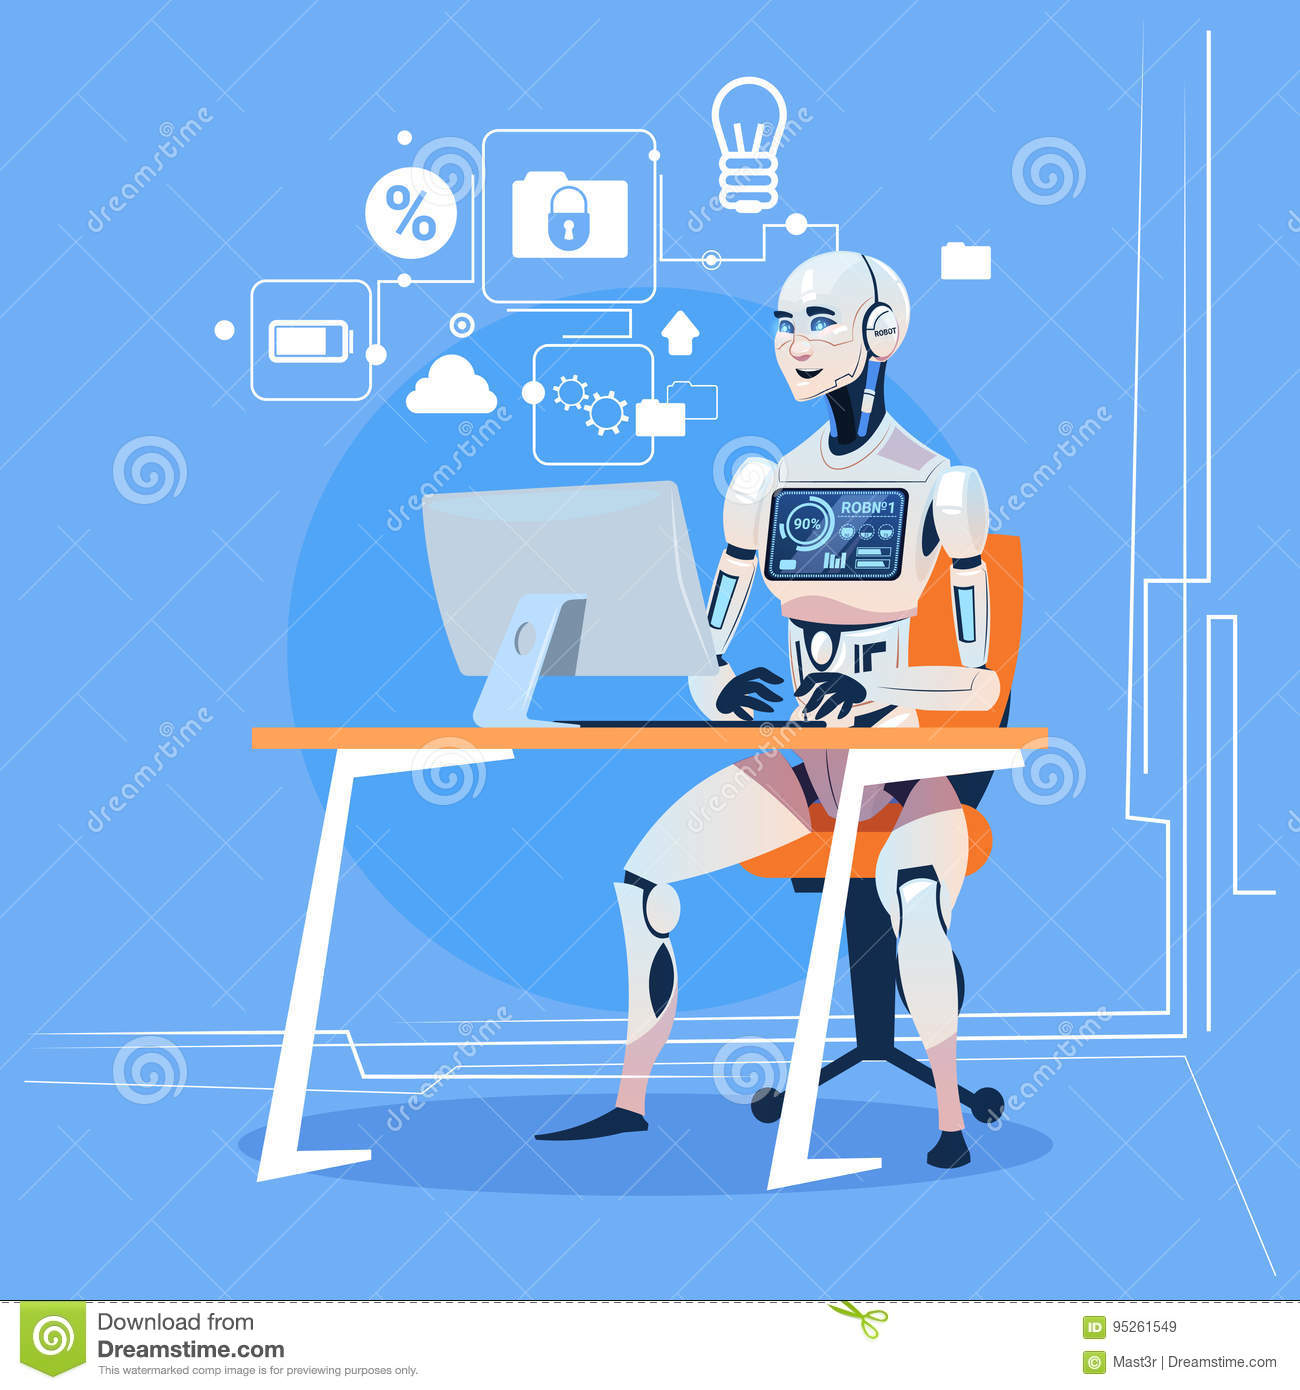 Modern Robot Working With Computer Fixing Errors Futuristic Artificial Intelligence Technology Concept